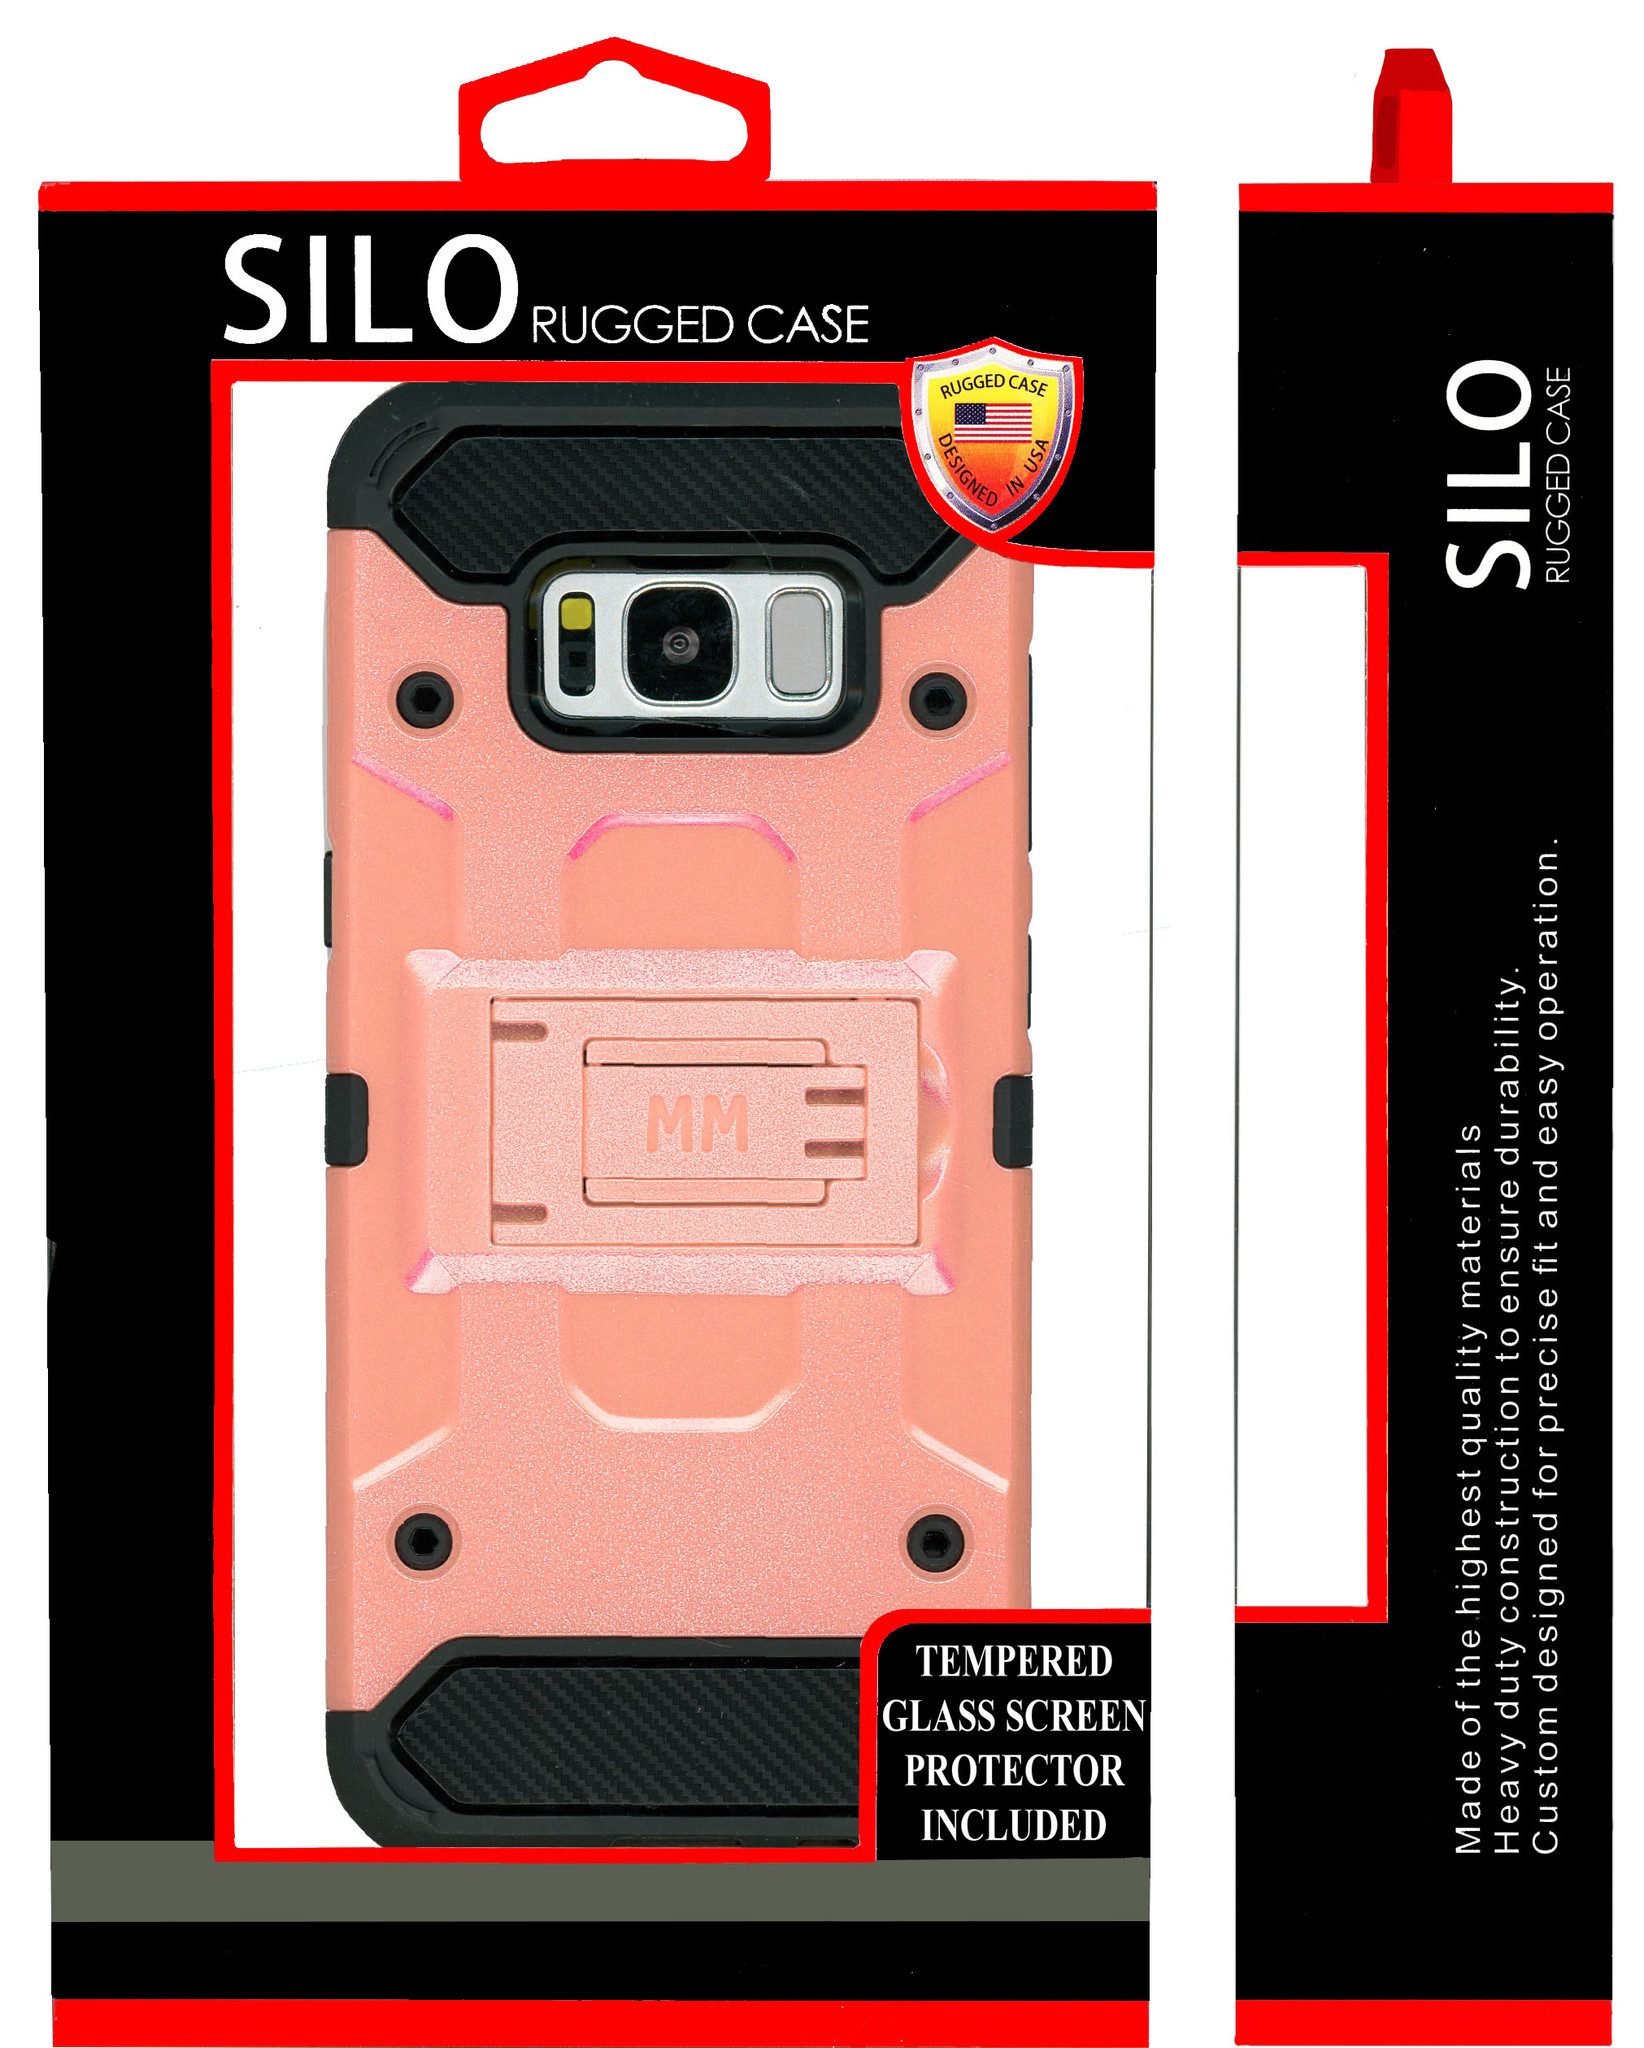 Samsung Galaxy S8 Plus Mm Silo Rugged Case Rose Gold Curved Tempered Glass Included